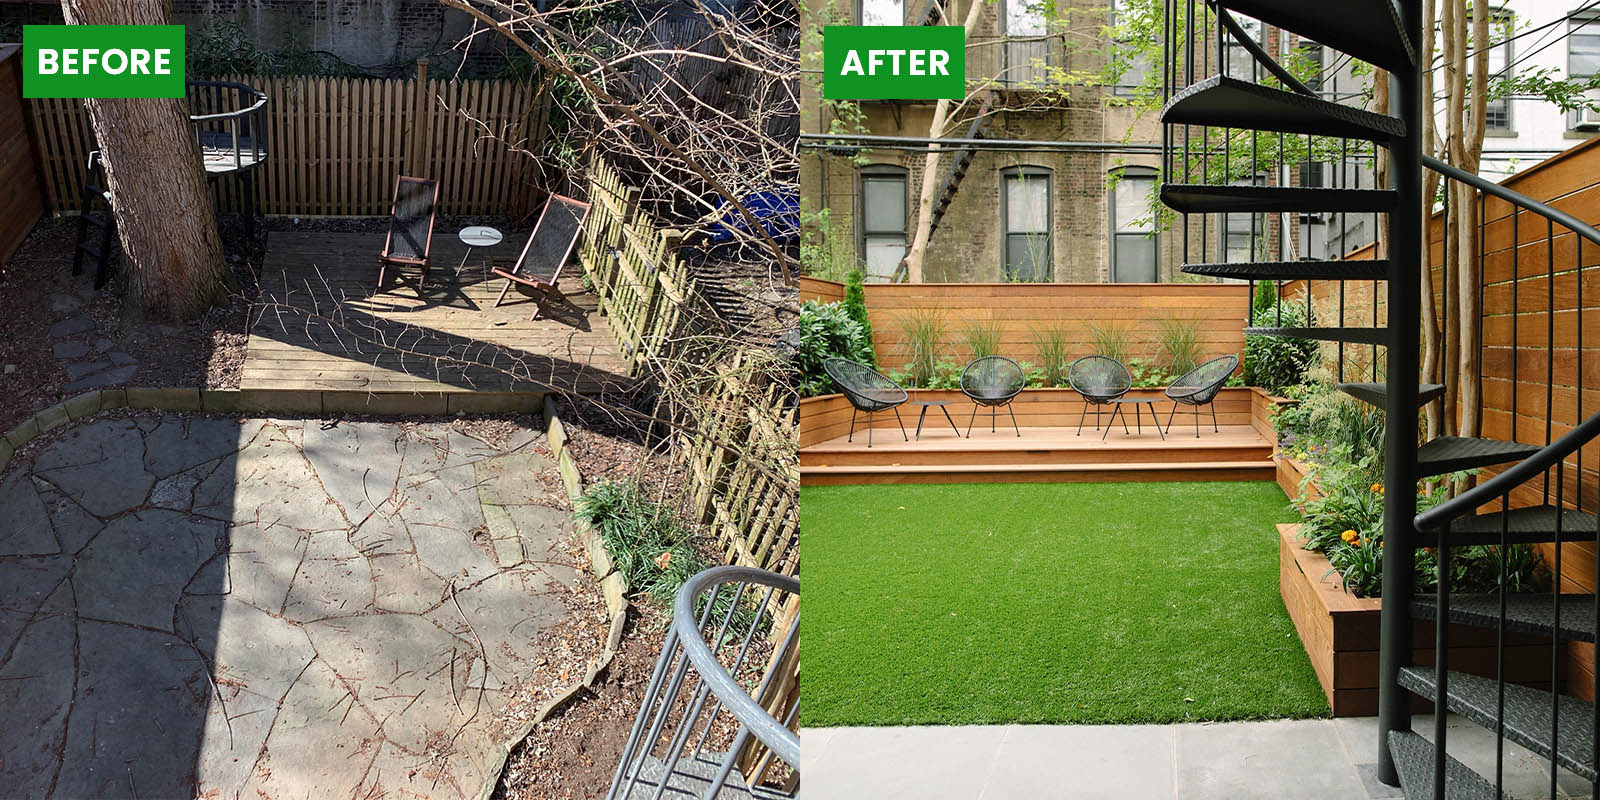 Terrace Landscaping Client Before and After